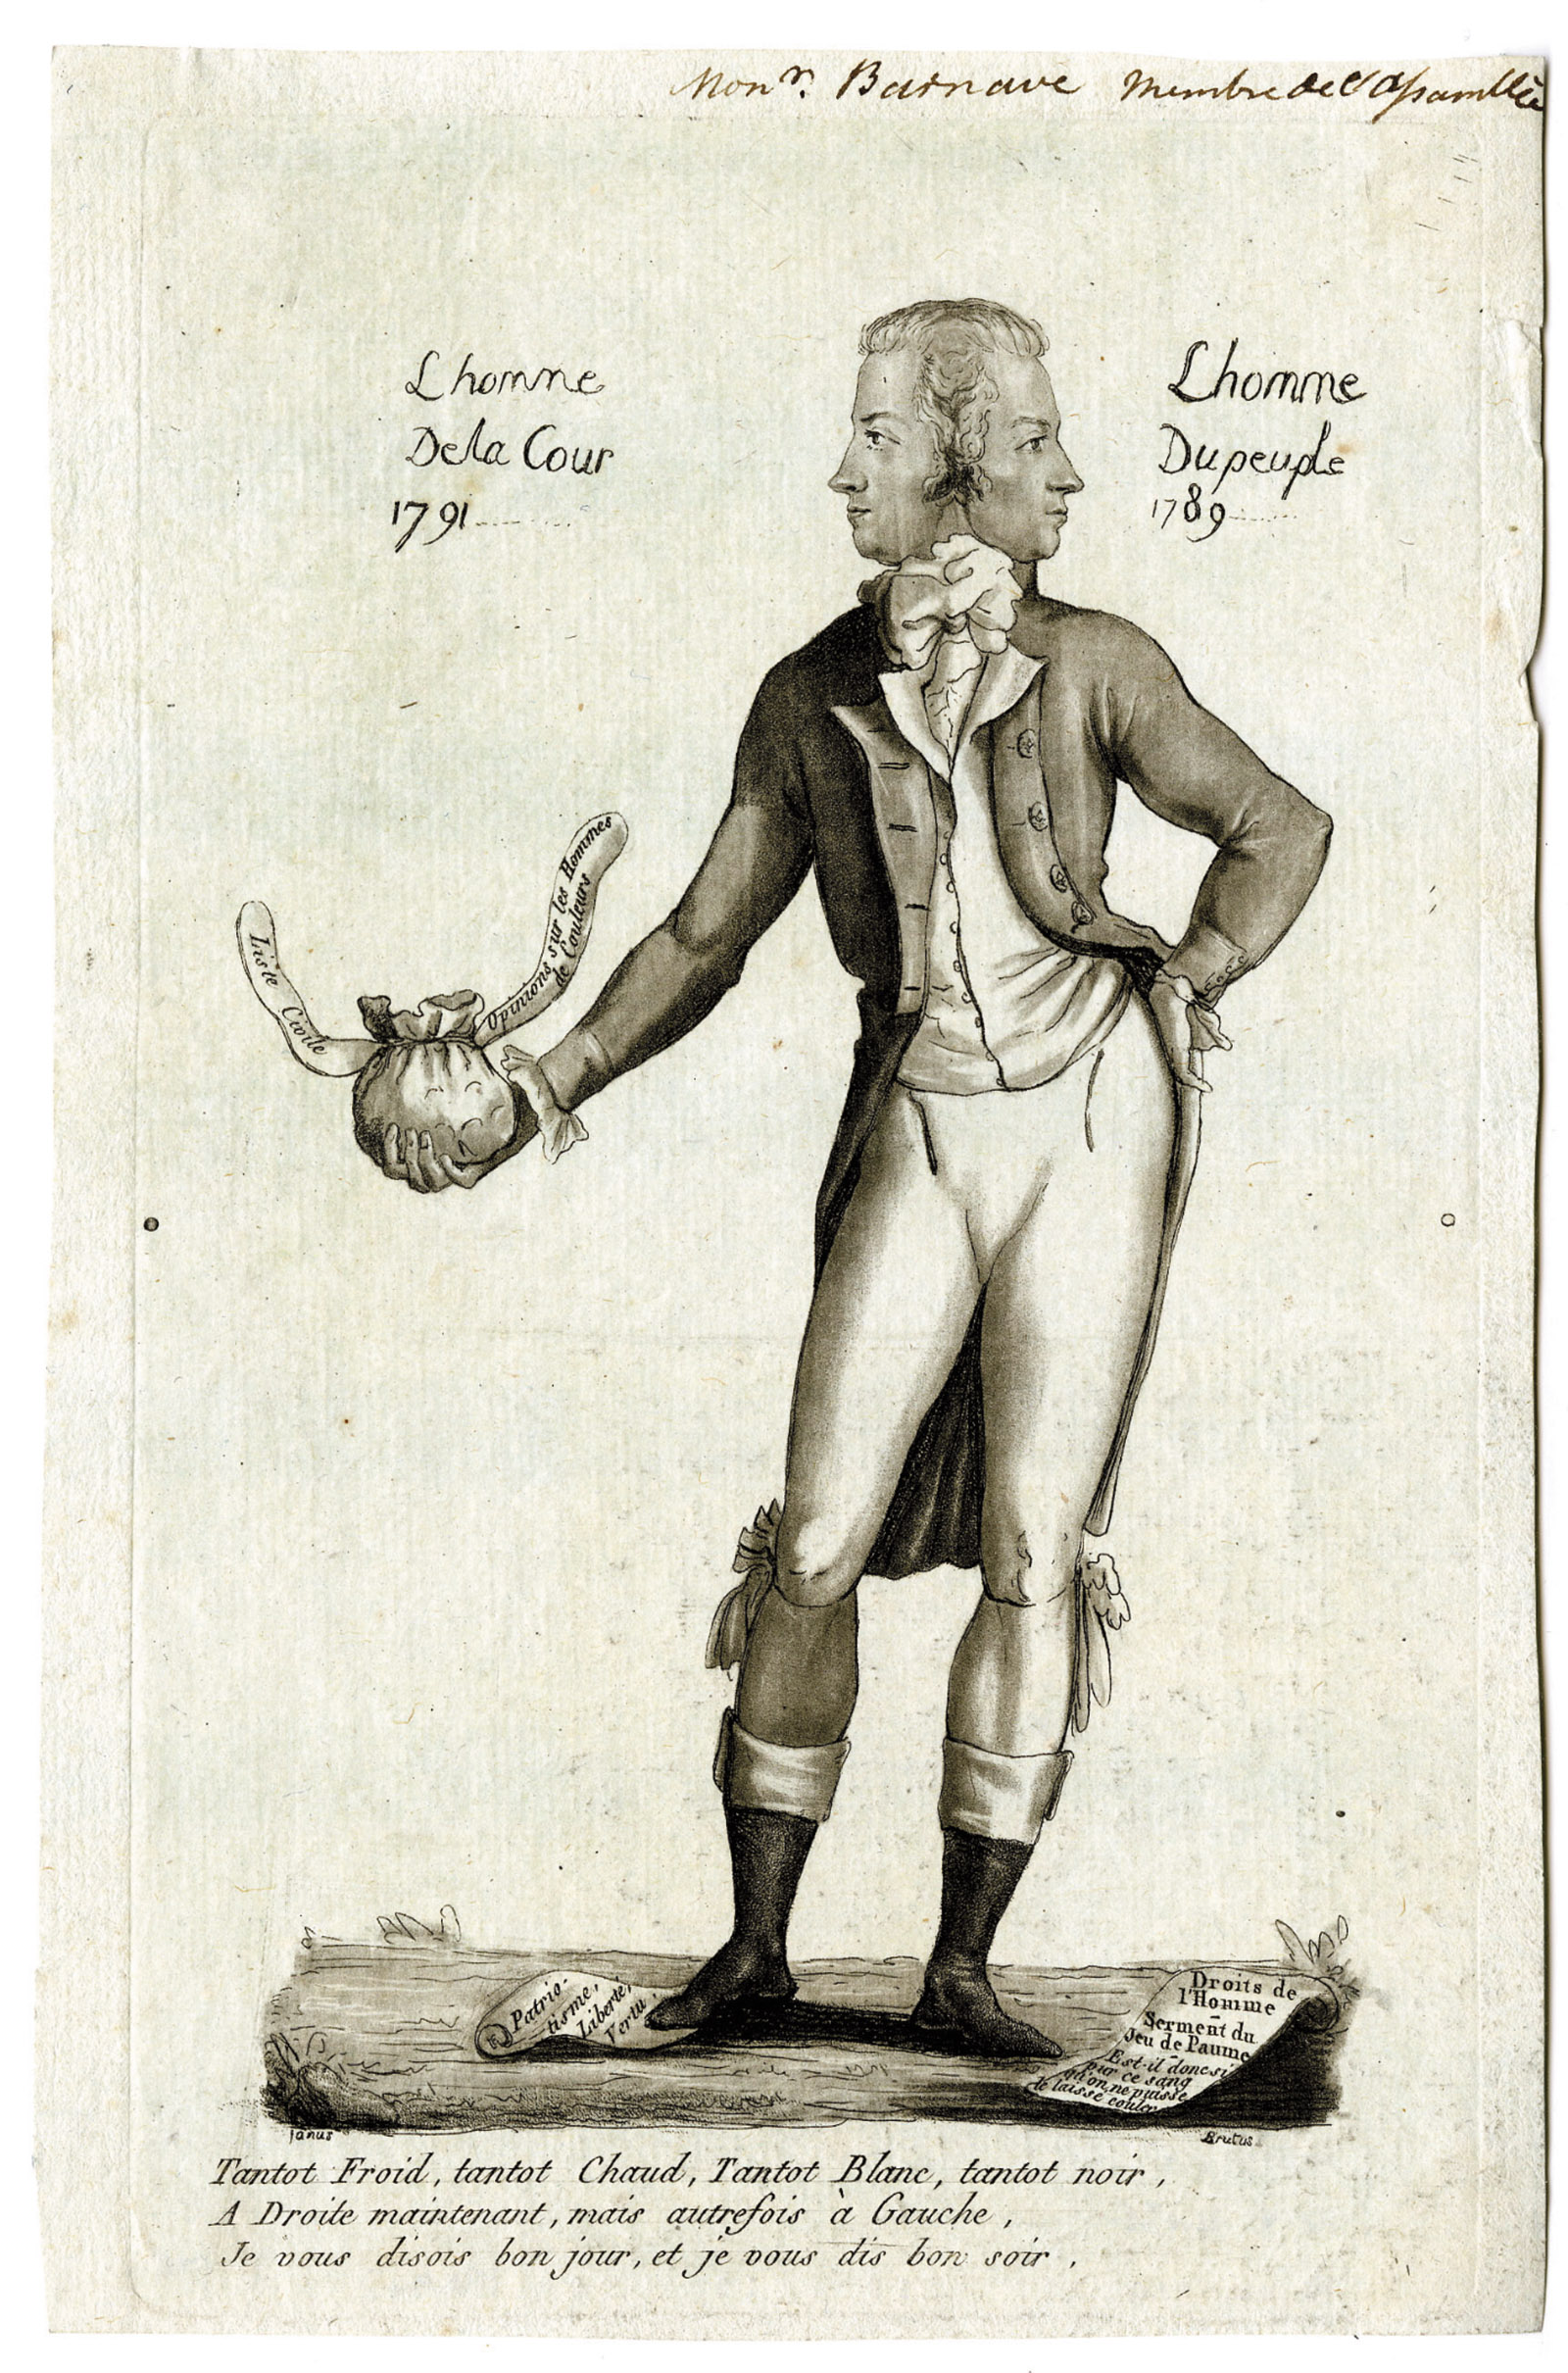 Antoine Barnave as both 'The man of the people 1789' and 'The man of the court 1791'